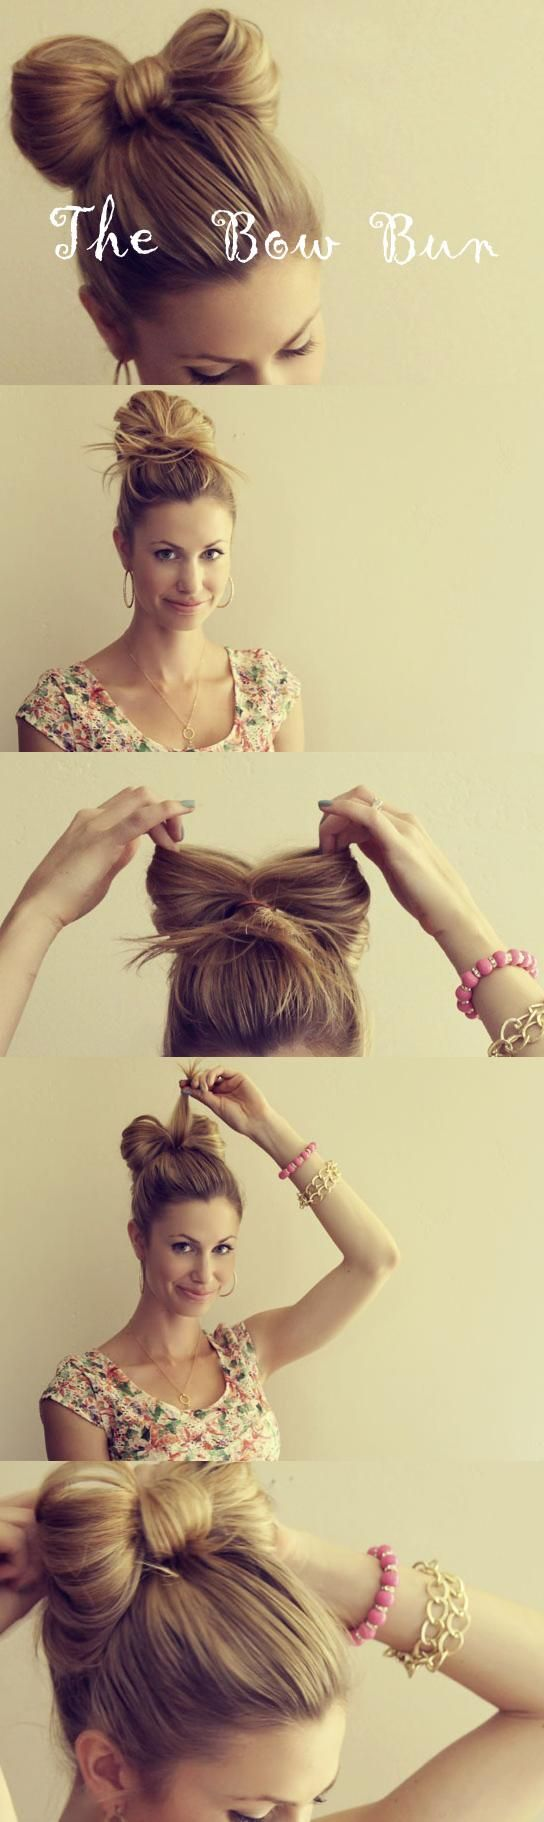 bow bun. so easy: Hairstyles, Idea, Hair Styles, Hairdos, Hair Tutorial, Bow Buns, Hair Bows, Updo